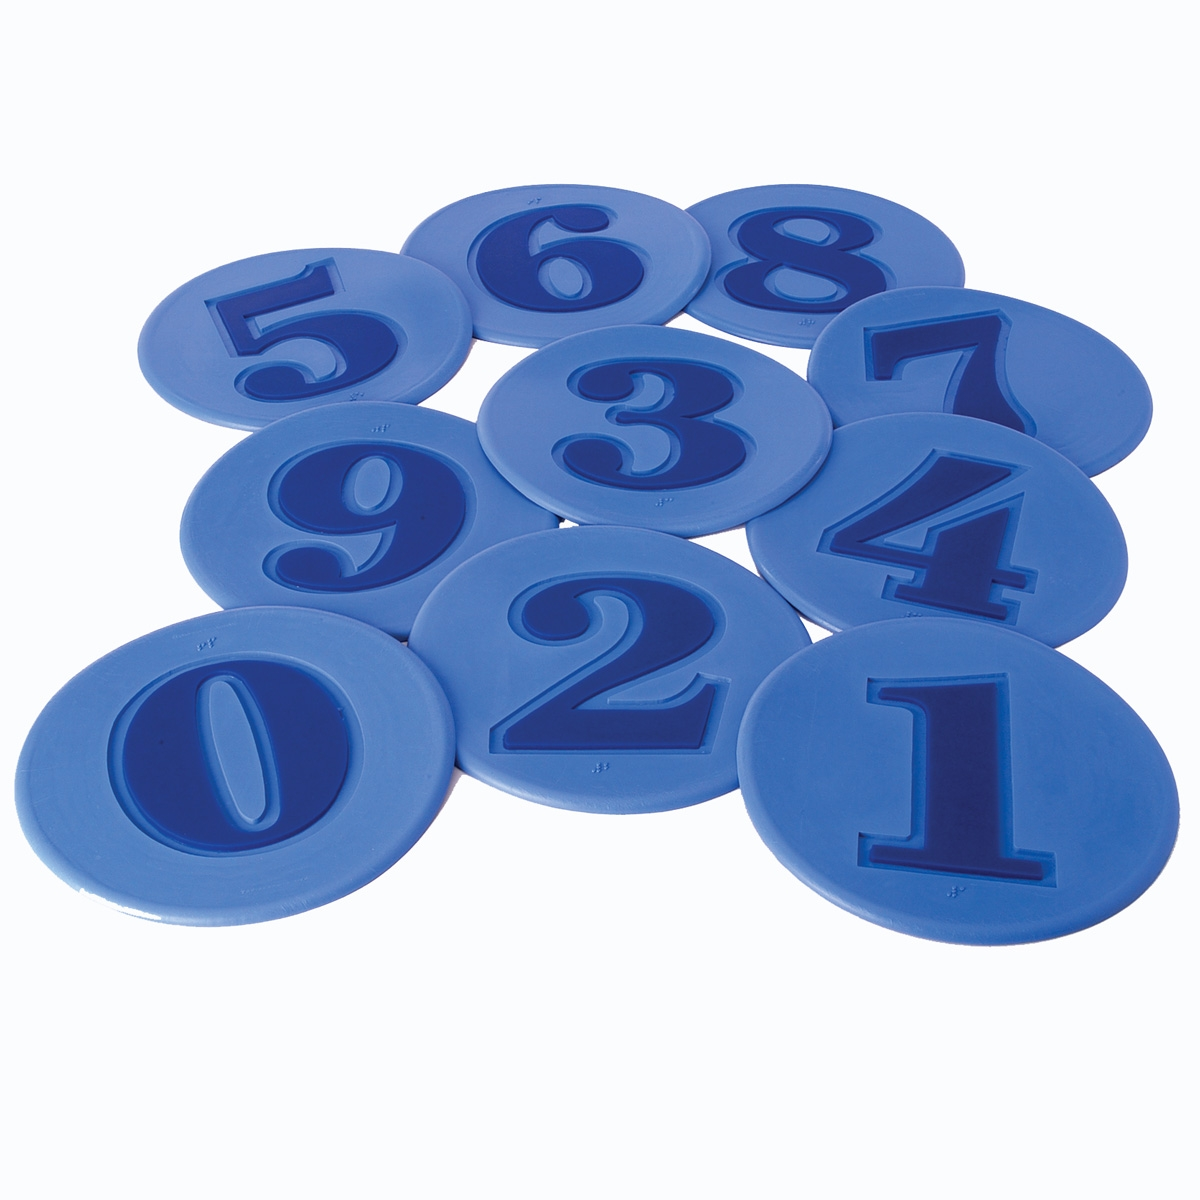 poly spot markers set of numbers in blue color